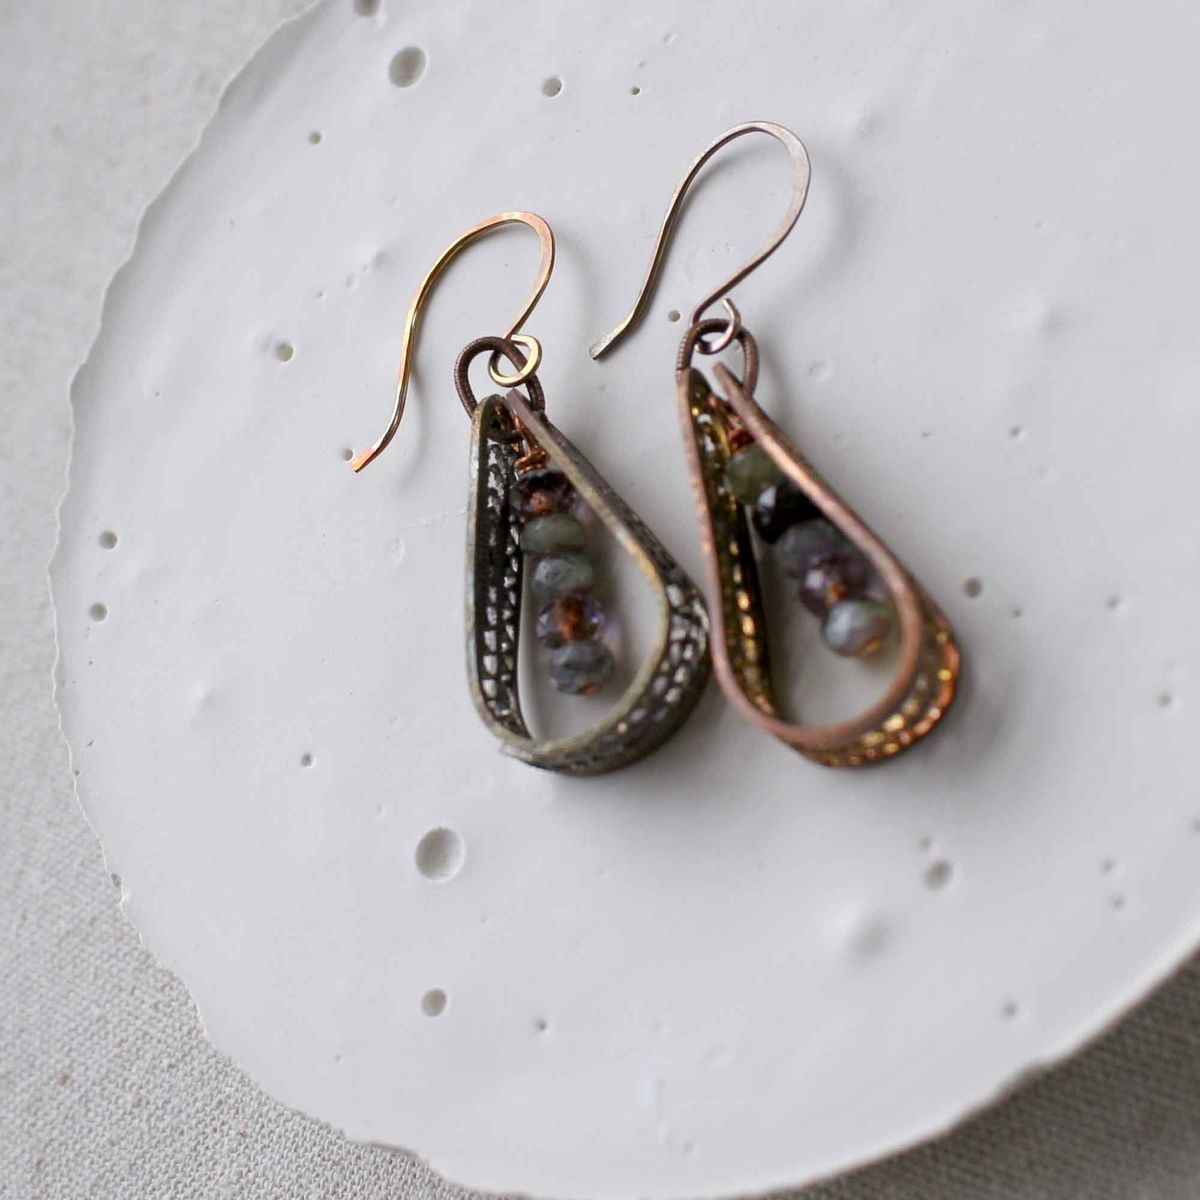 Fire Patina Copper Earrings with Glass Beads - product images  of